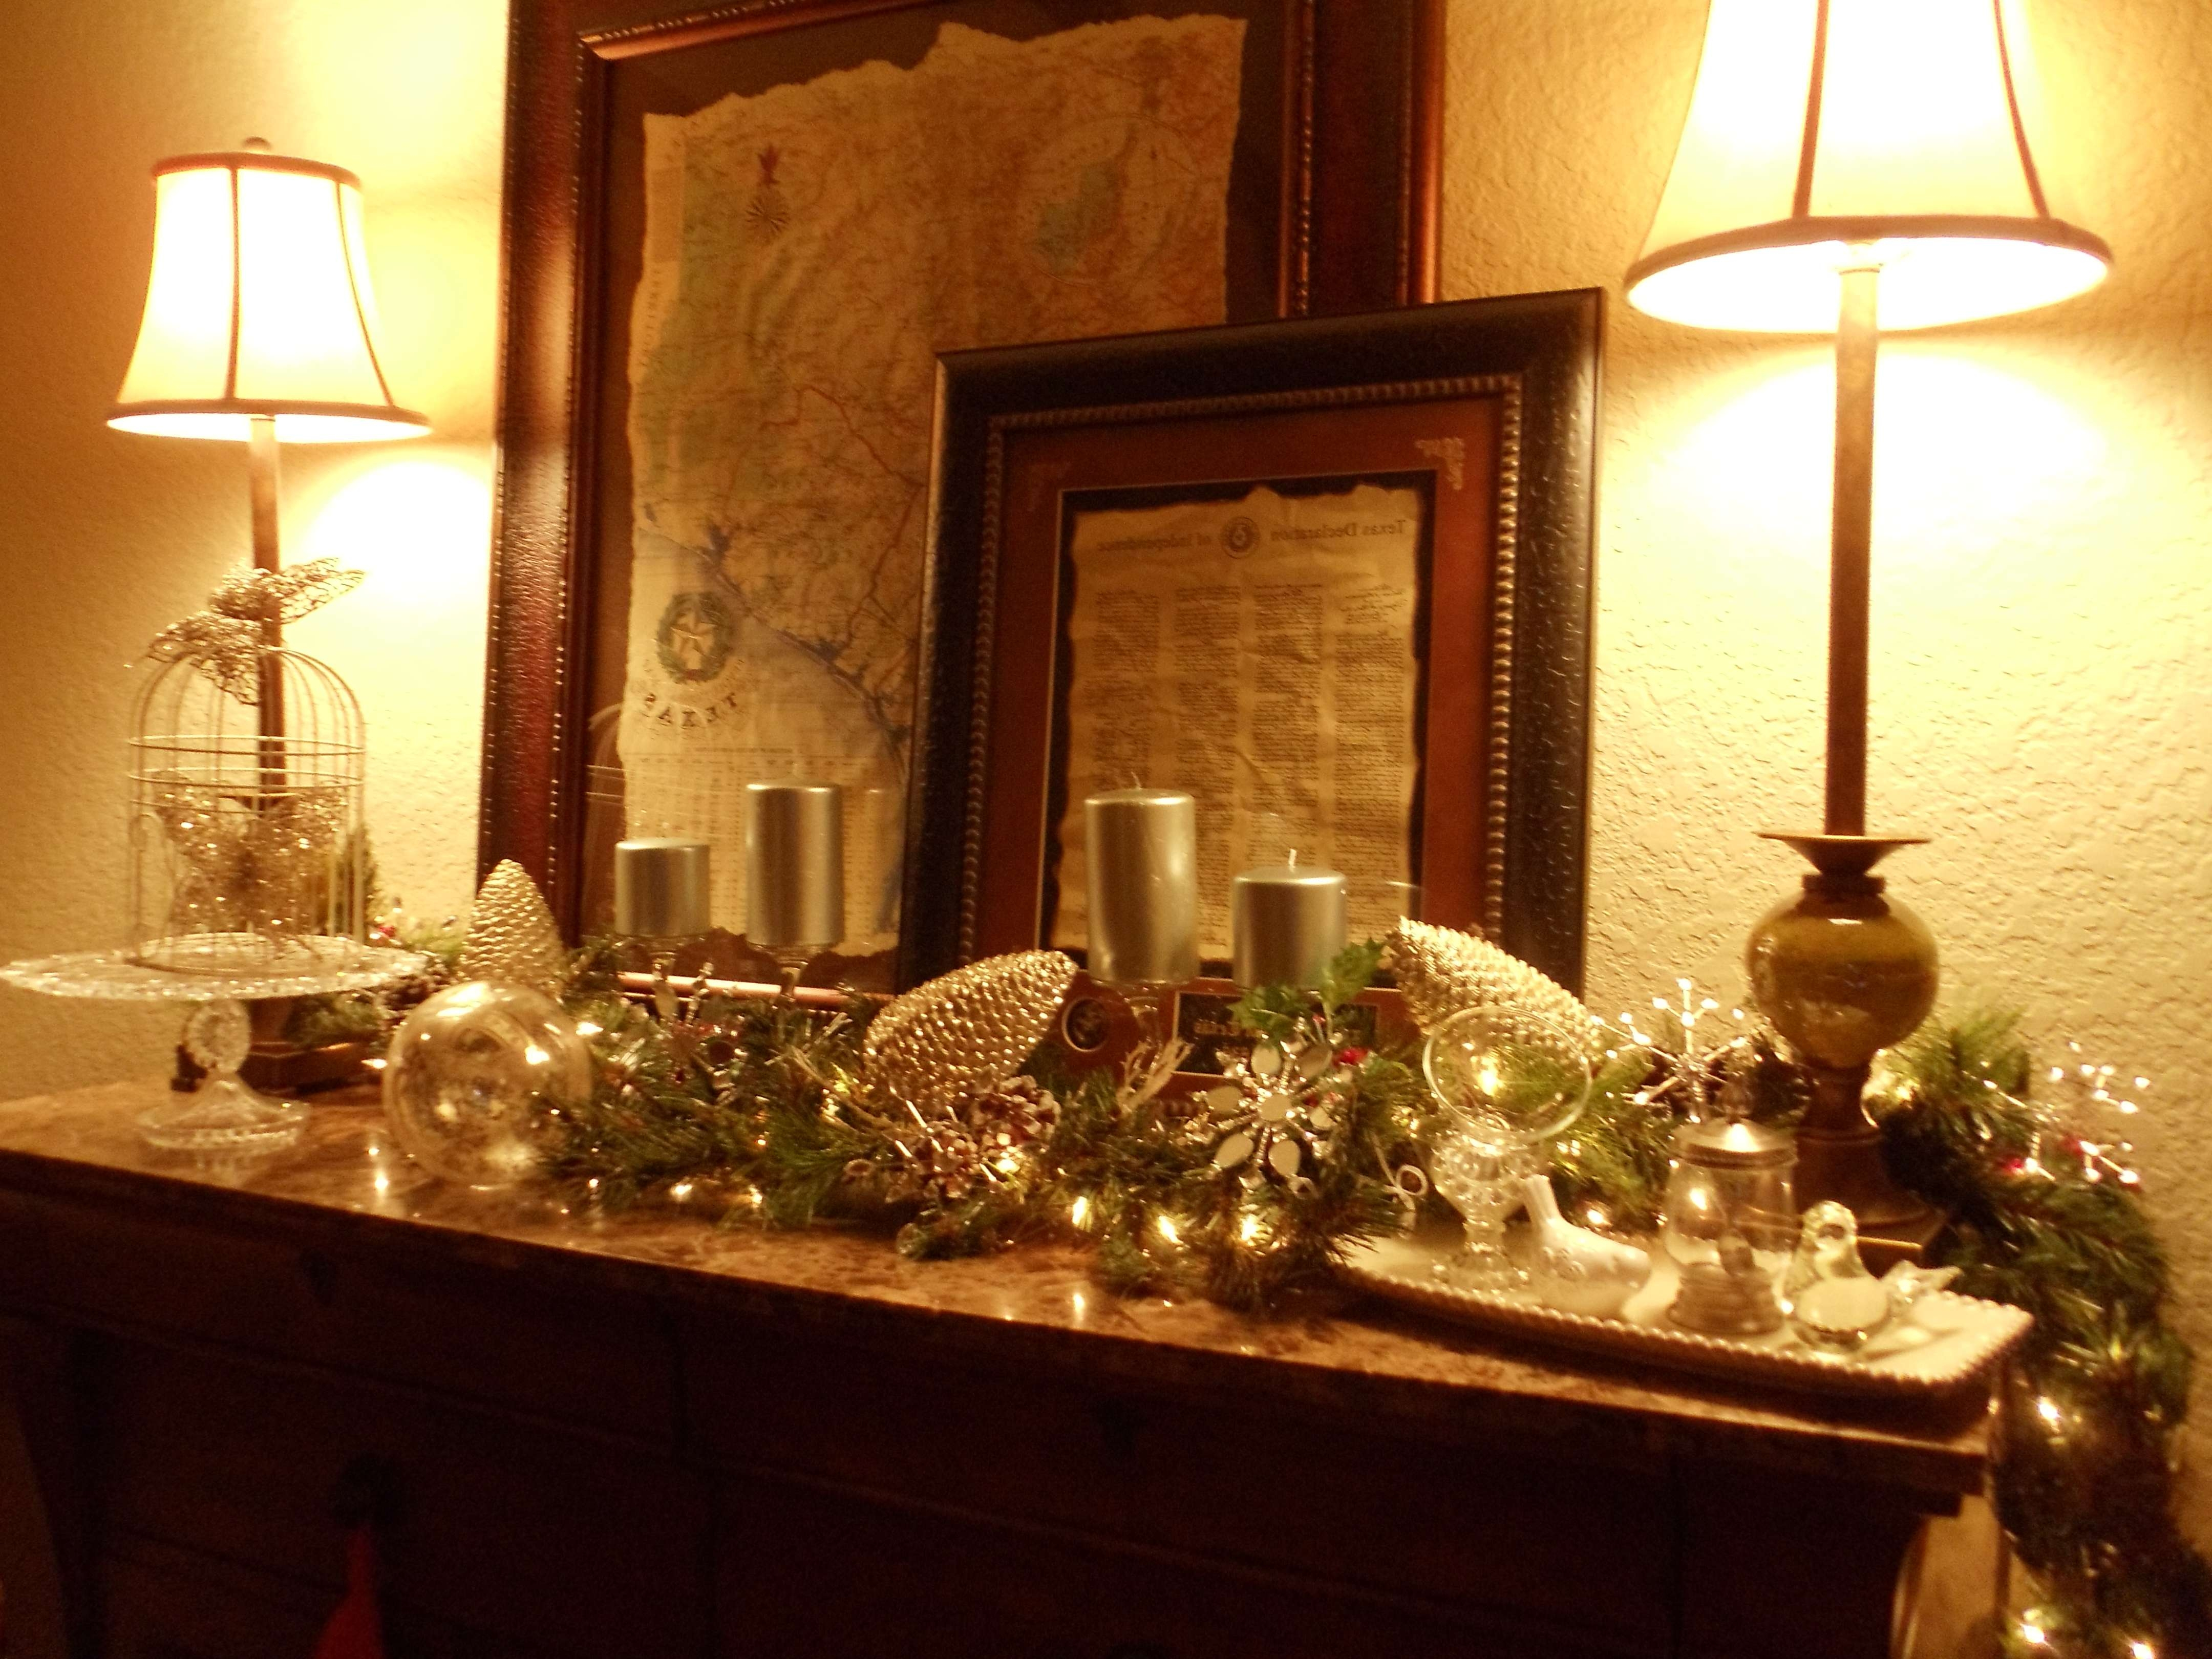 My Christmas Sideboard | Nola Girl At Heartlifestyle Blog For Sideboards Decors (View 11 of 20)